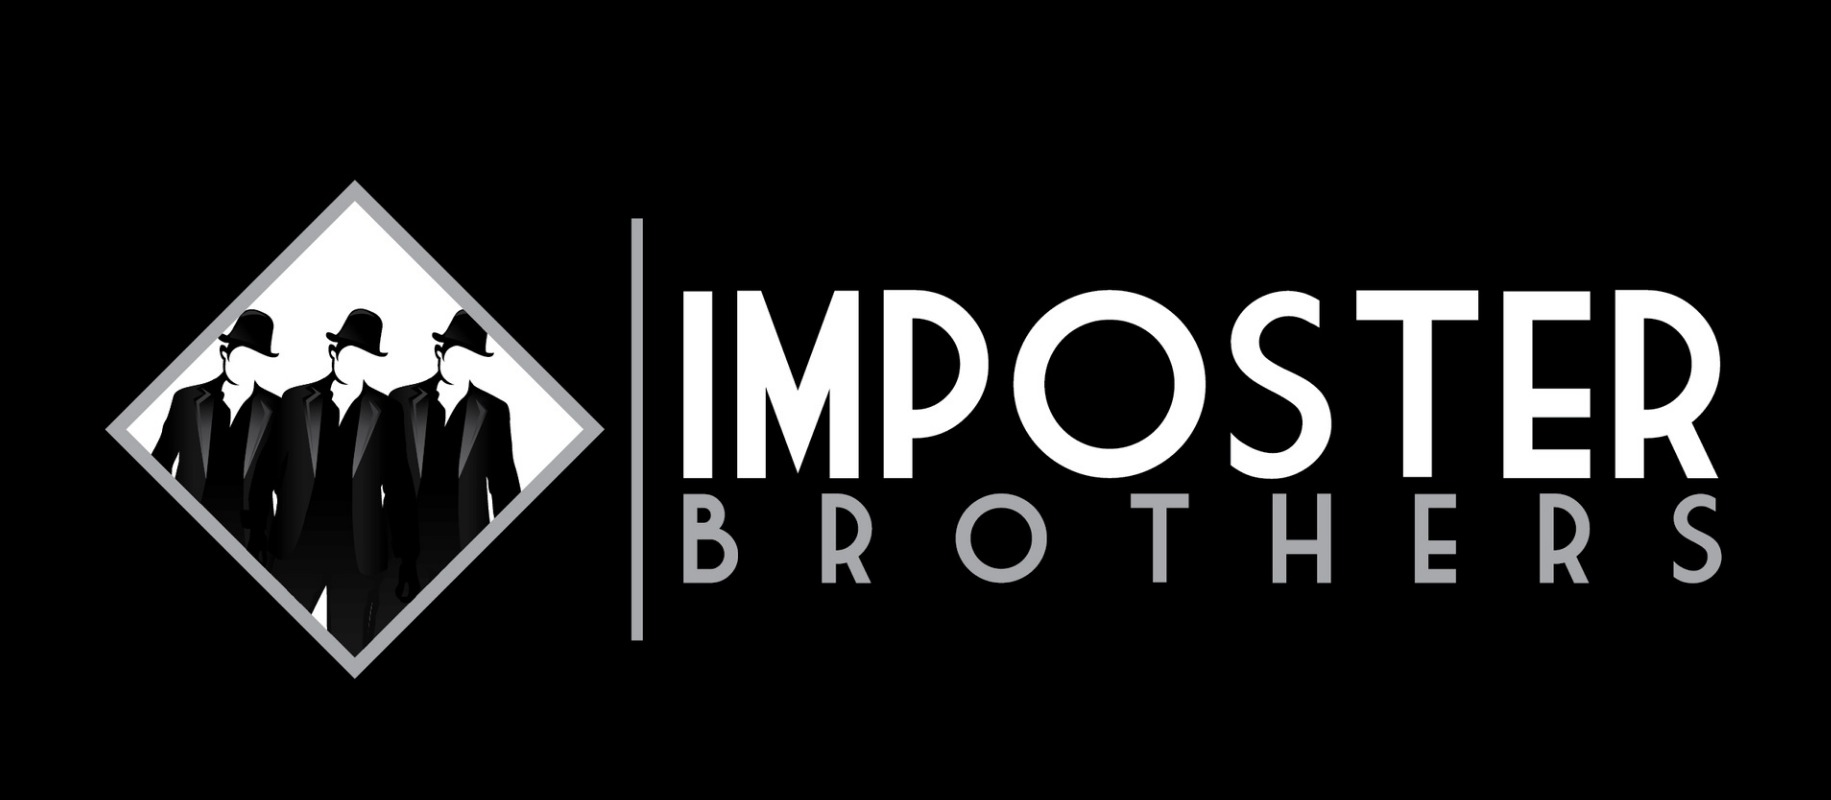 Ben Patrick Yates @ Imposter Brothers Entertainment